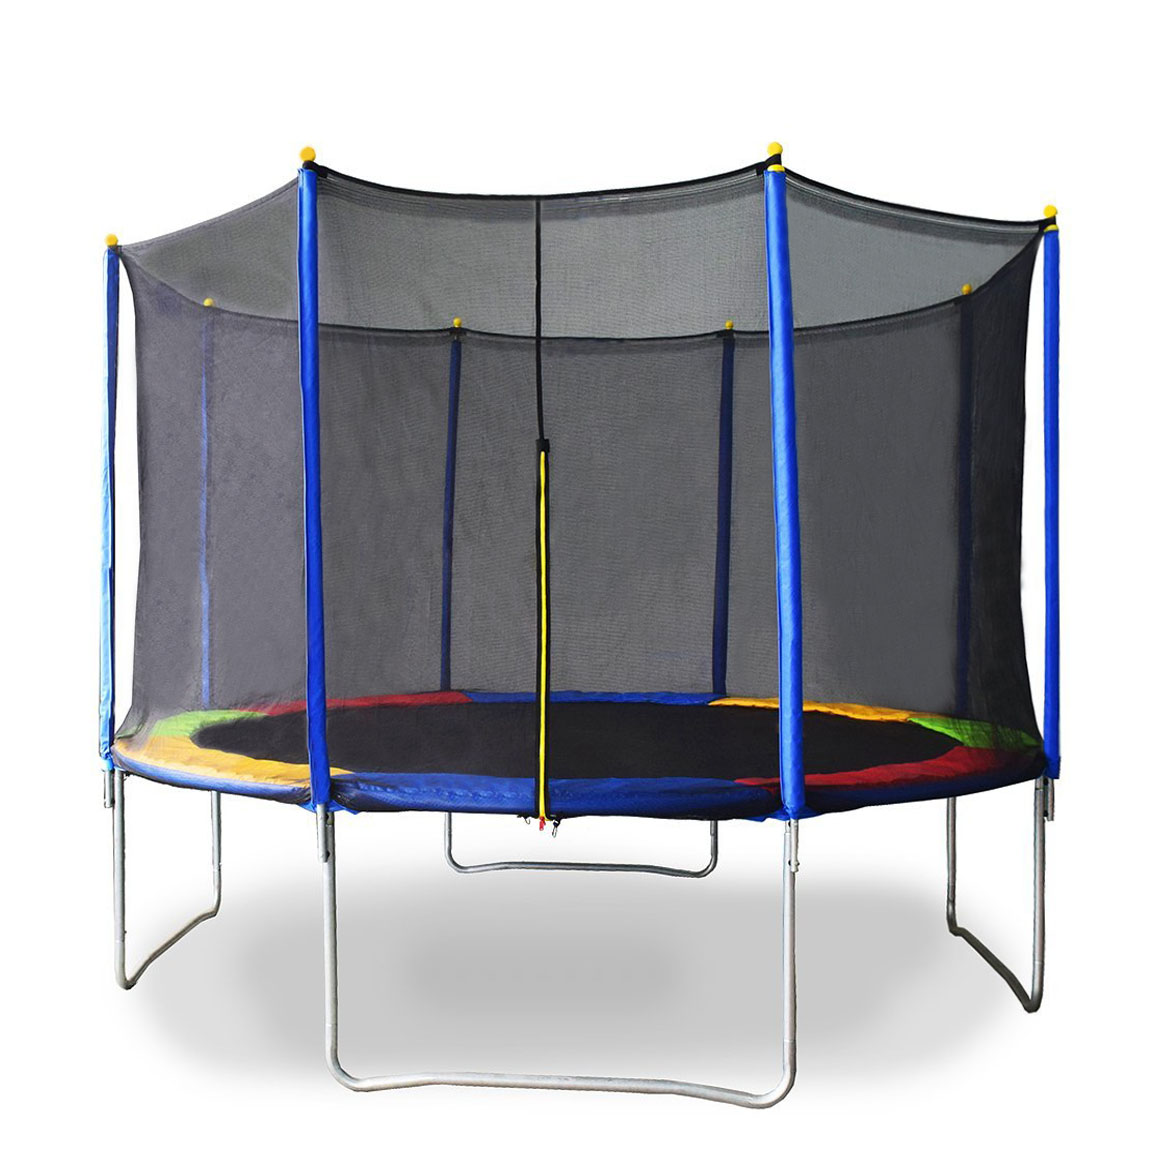 Trampoline Colorado Springs Sale: New Clevr 12 FT Trampoline Bounce Jump Safety Enclosure